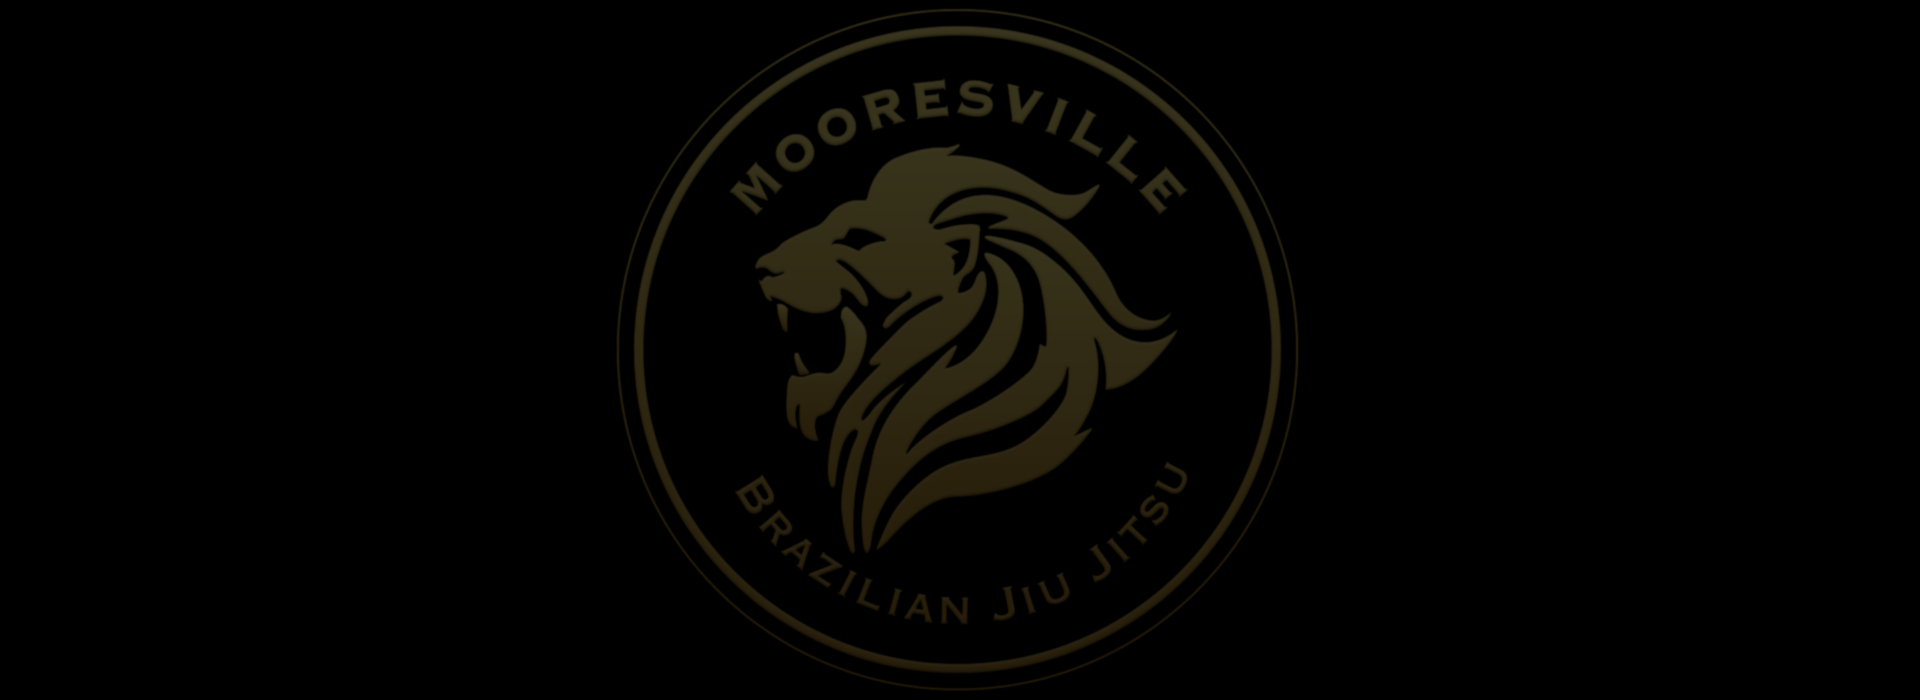 Mooresville Brazilian Jiu Jitsu photo